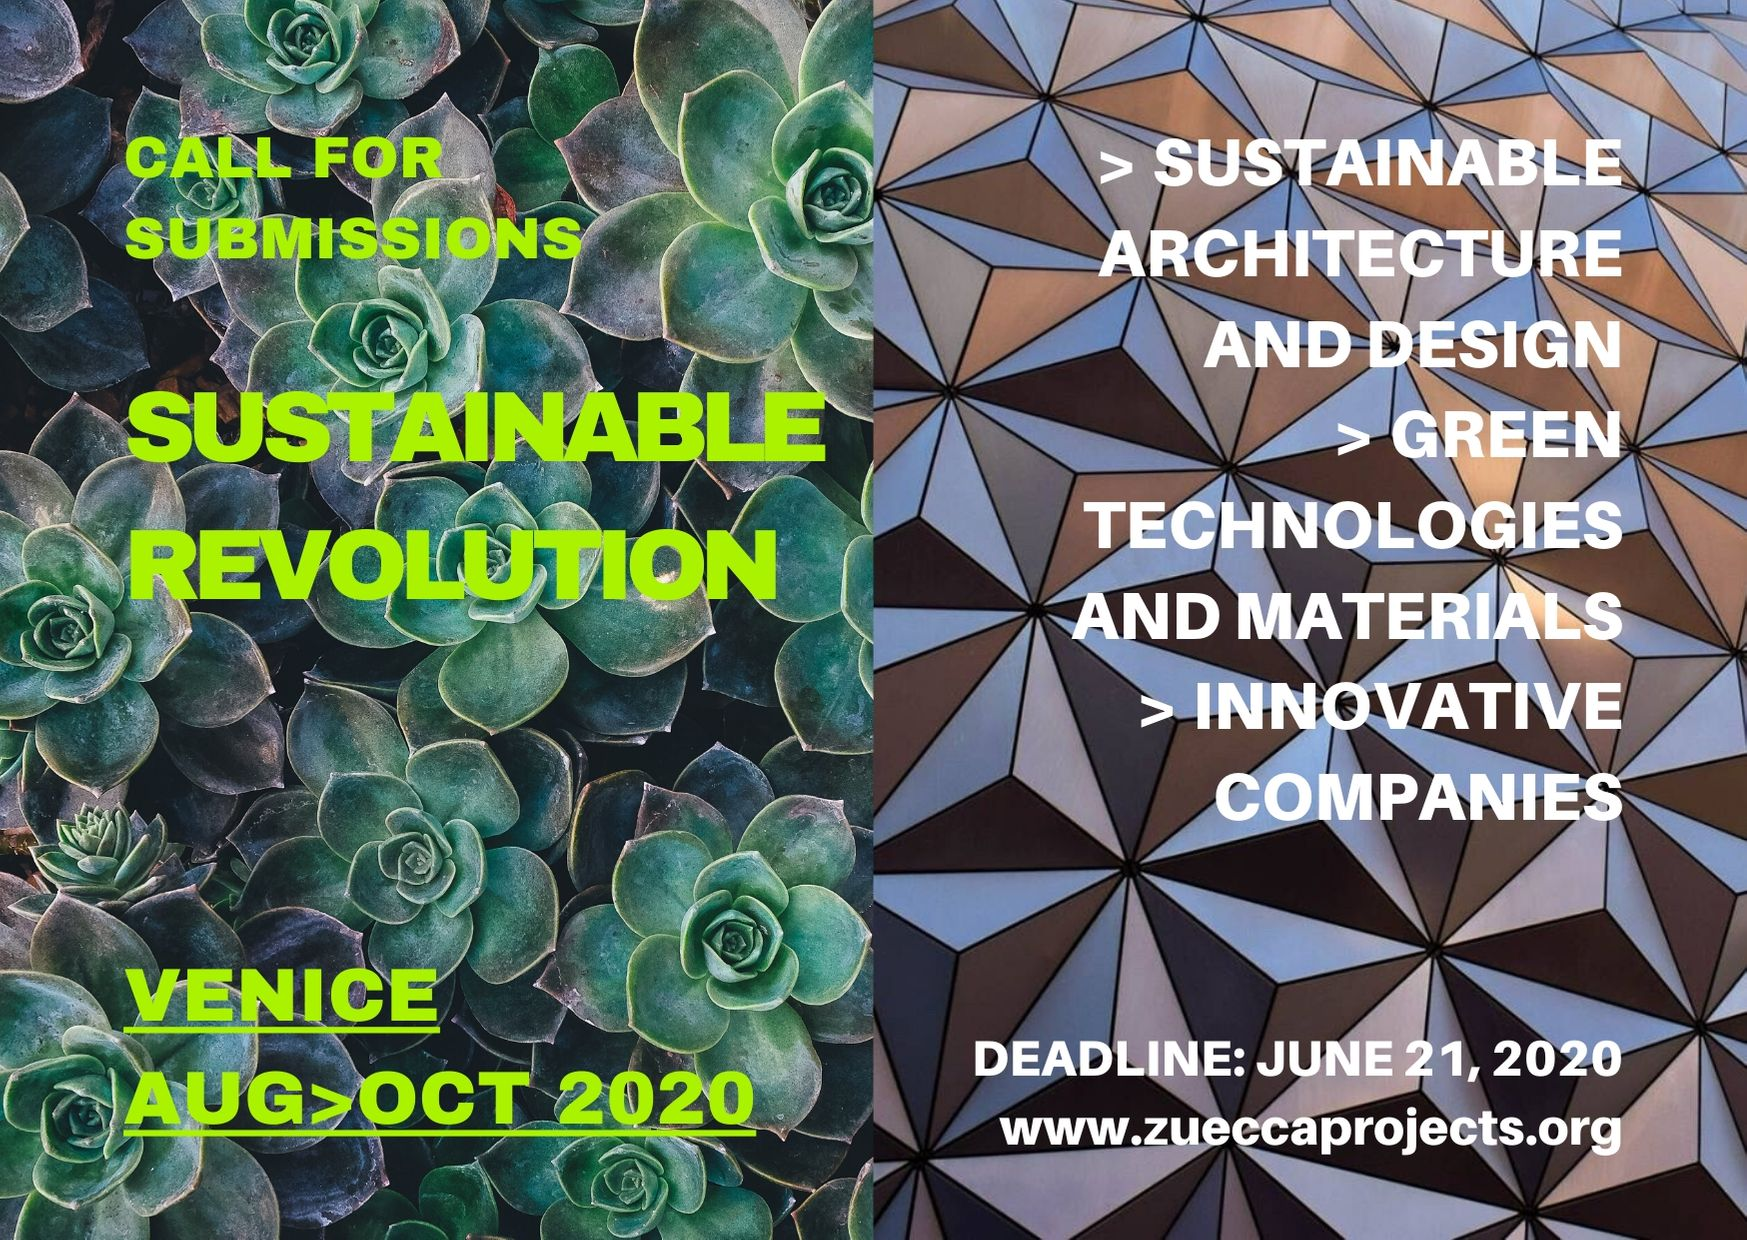 CALL FOR SUBMISSIONS: Sustainable Revolution – Zuecca Projects